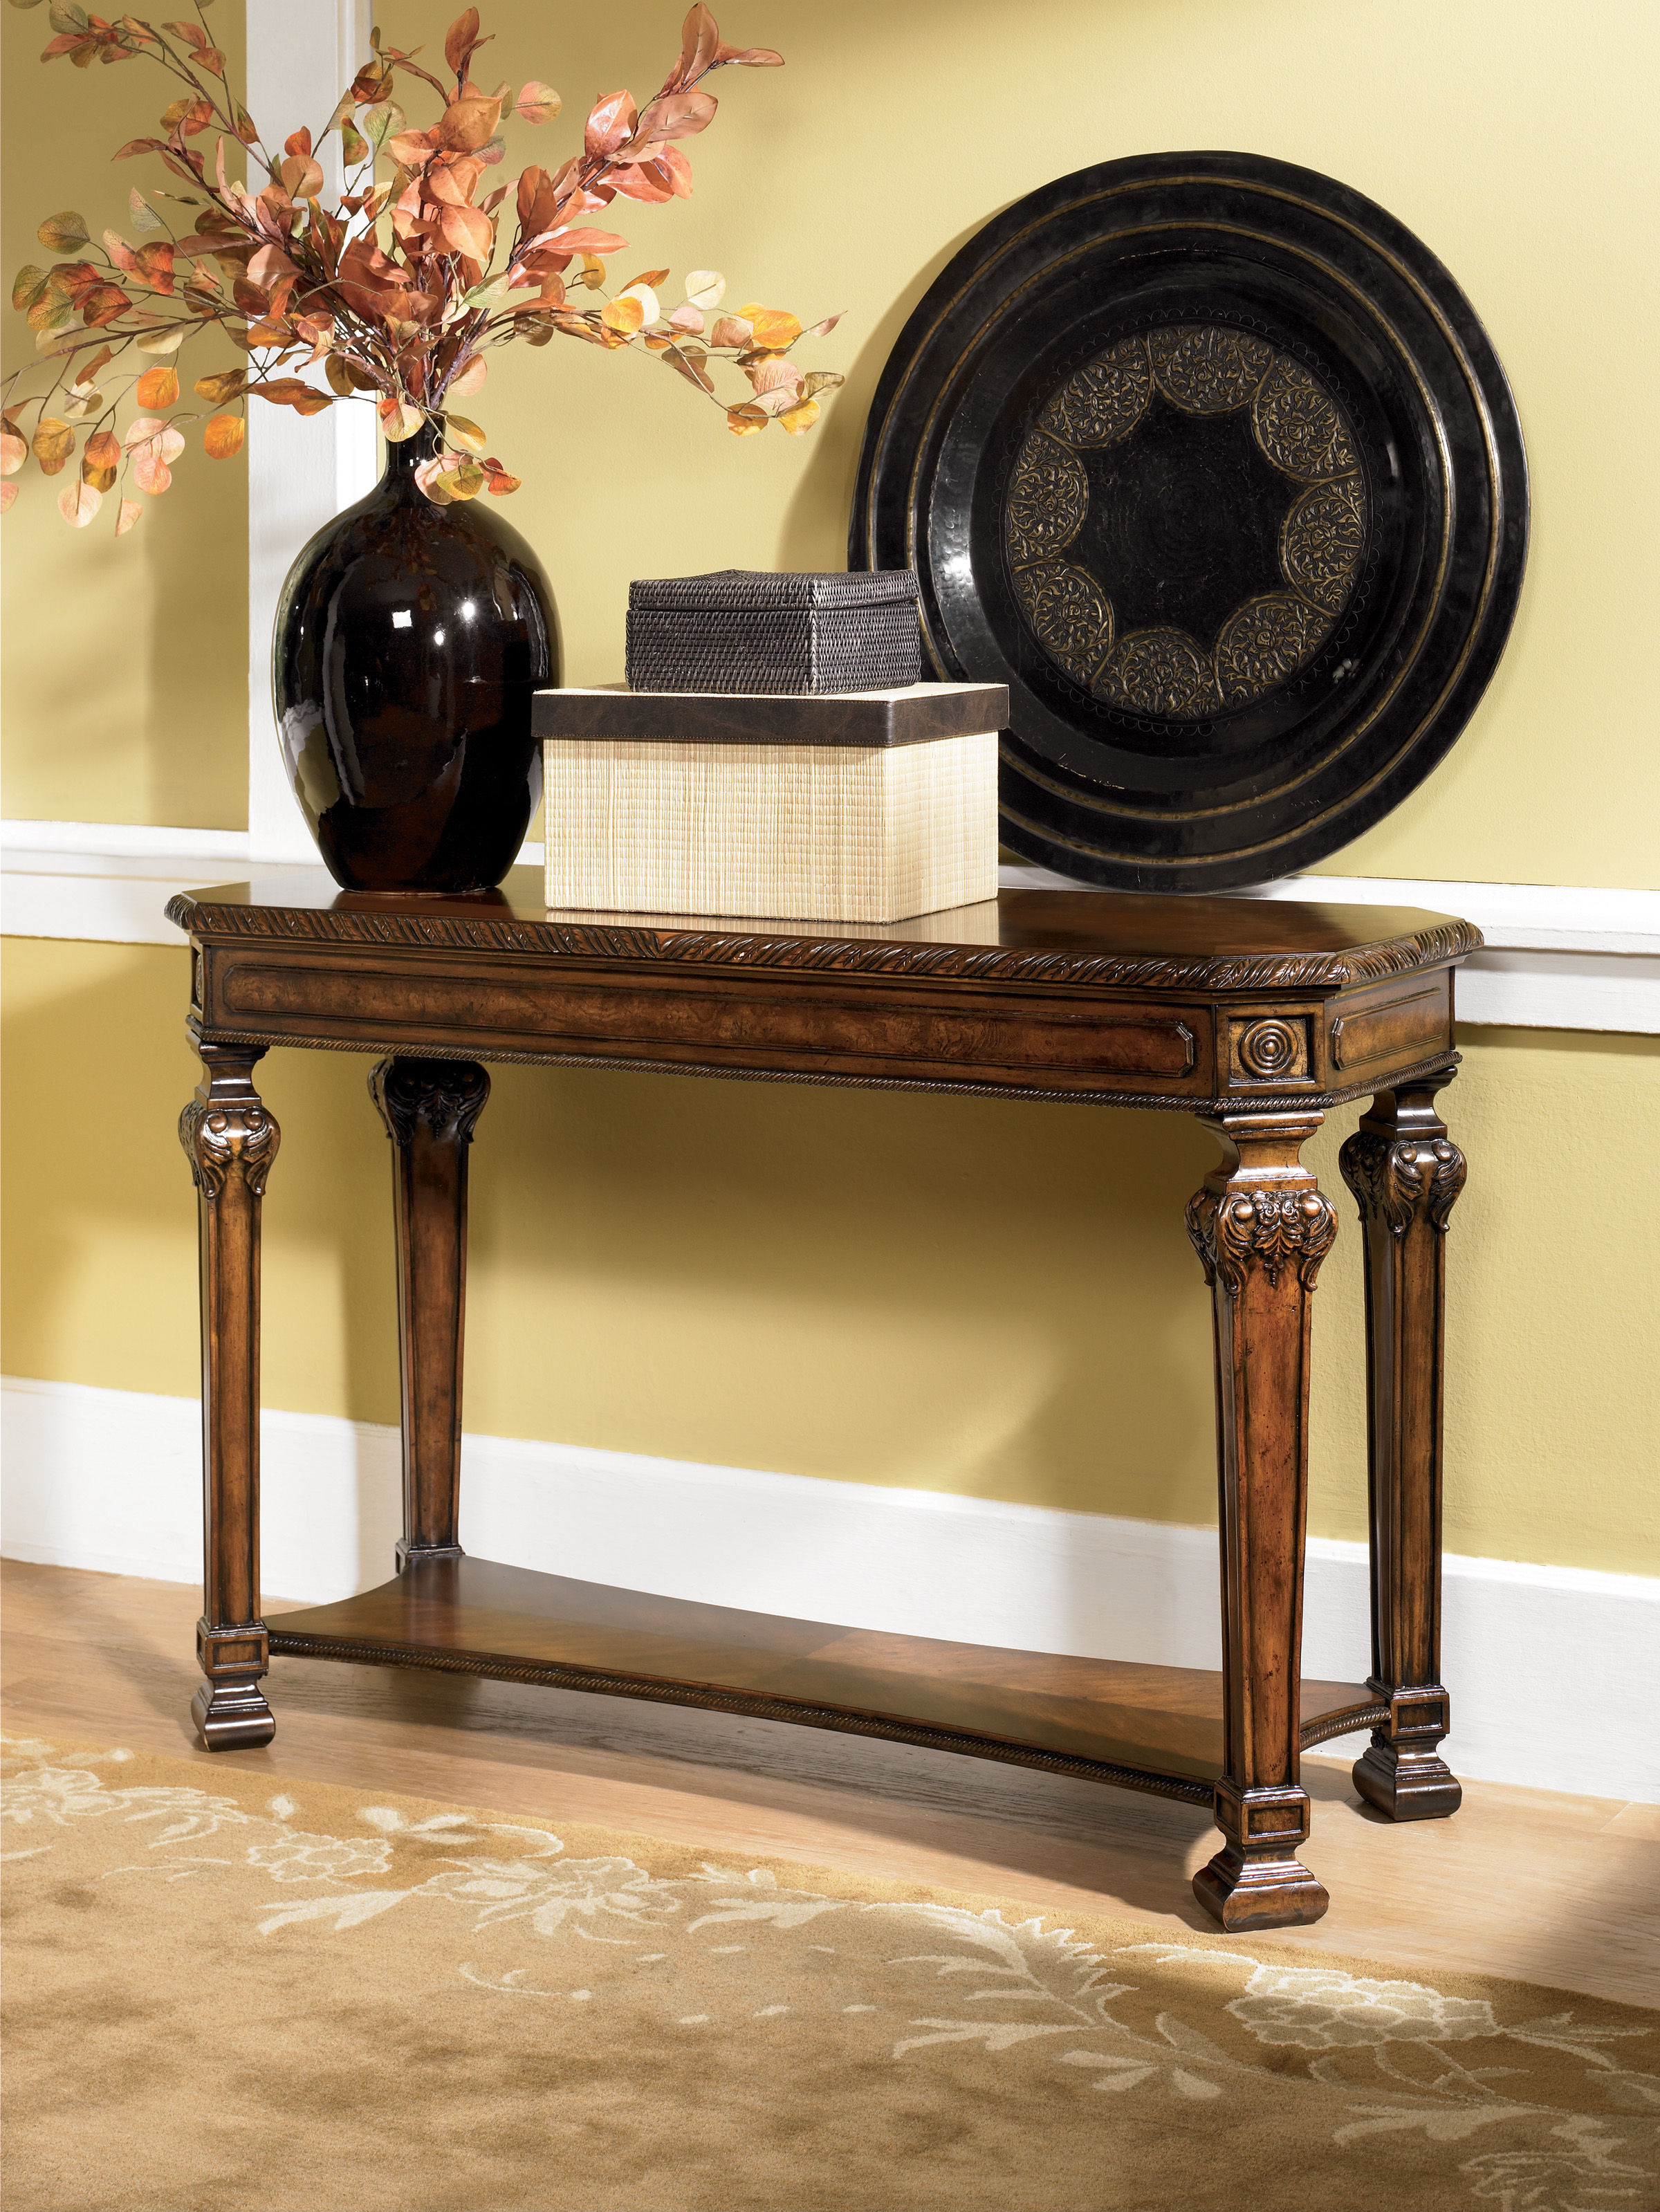 Marvelous Old World Sofa Table The Classy Home Machost Co Dining Chair Design Ideas Machostcouk